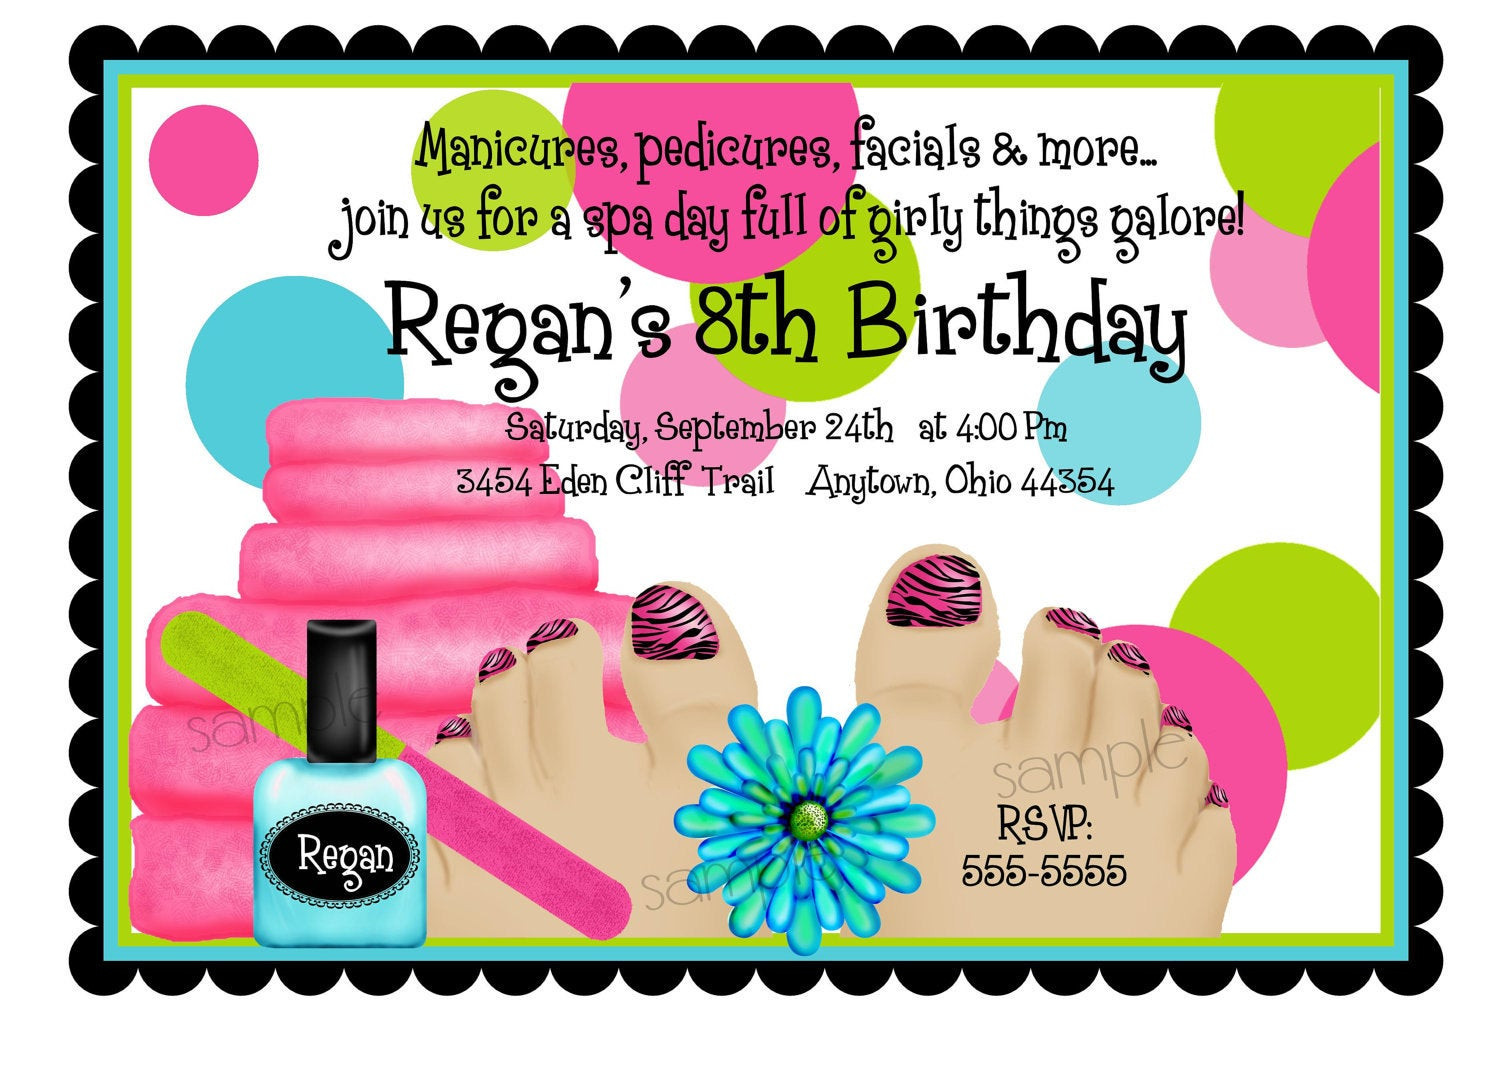 Best ideas about Spa Birthday Invitations . Save or Pin Spa Birthday Party Invitations Spa Party Spa Now.